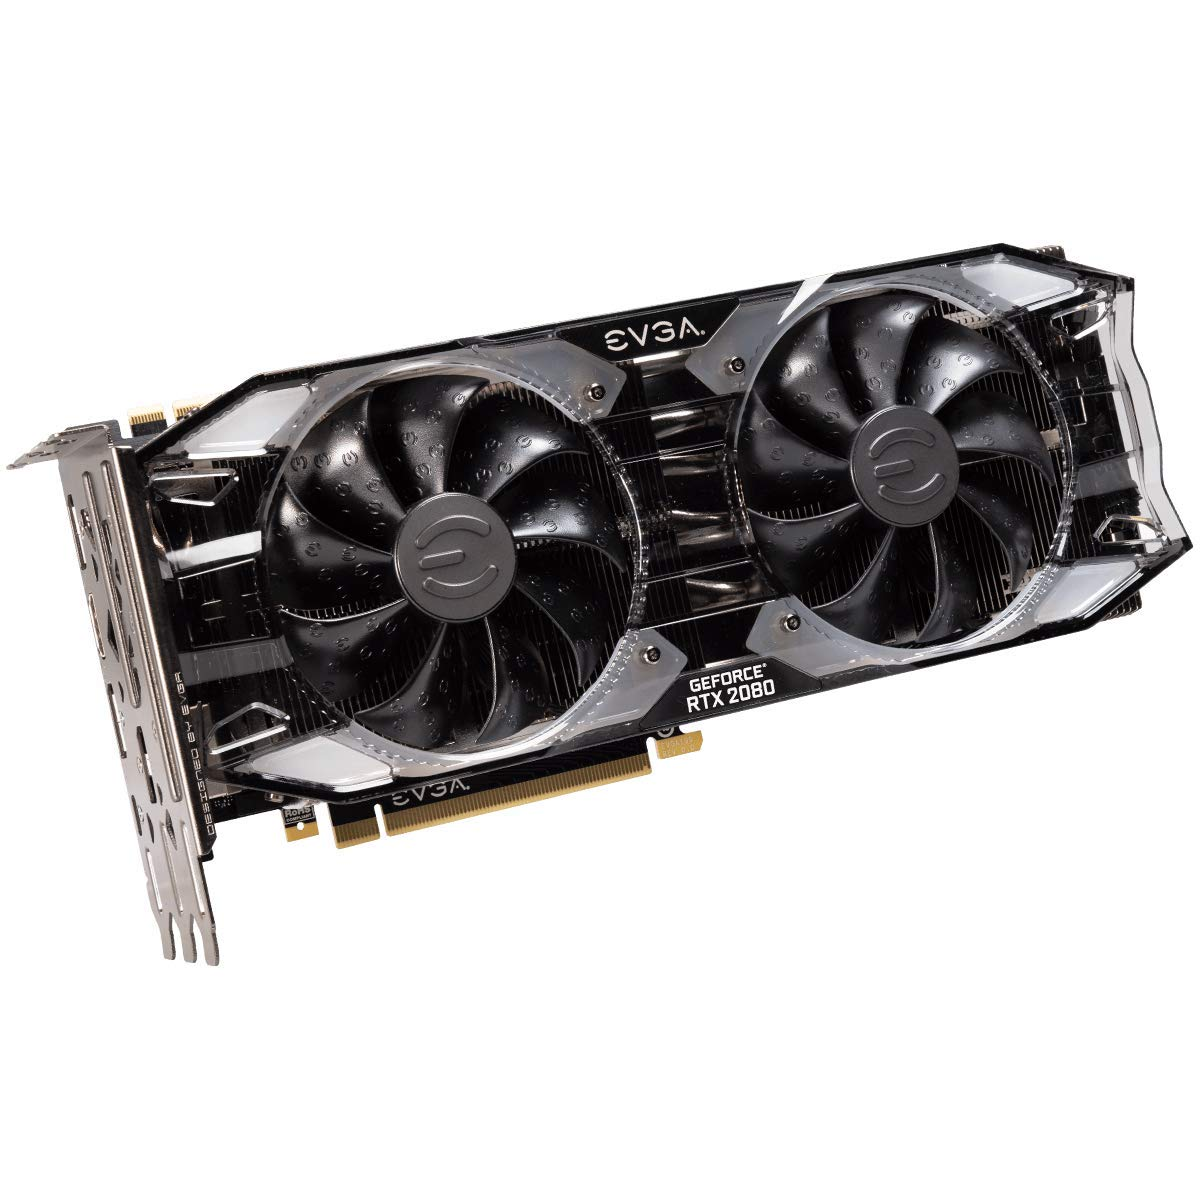 EVGA GeForce RTX 2080 XC ULTRA GAMING, 8GB GDDR6, Dual HDB Fans & RGB LED Graphics Card 08G-P4-2183-KR by EVGA (Image #3)